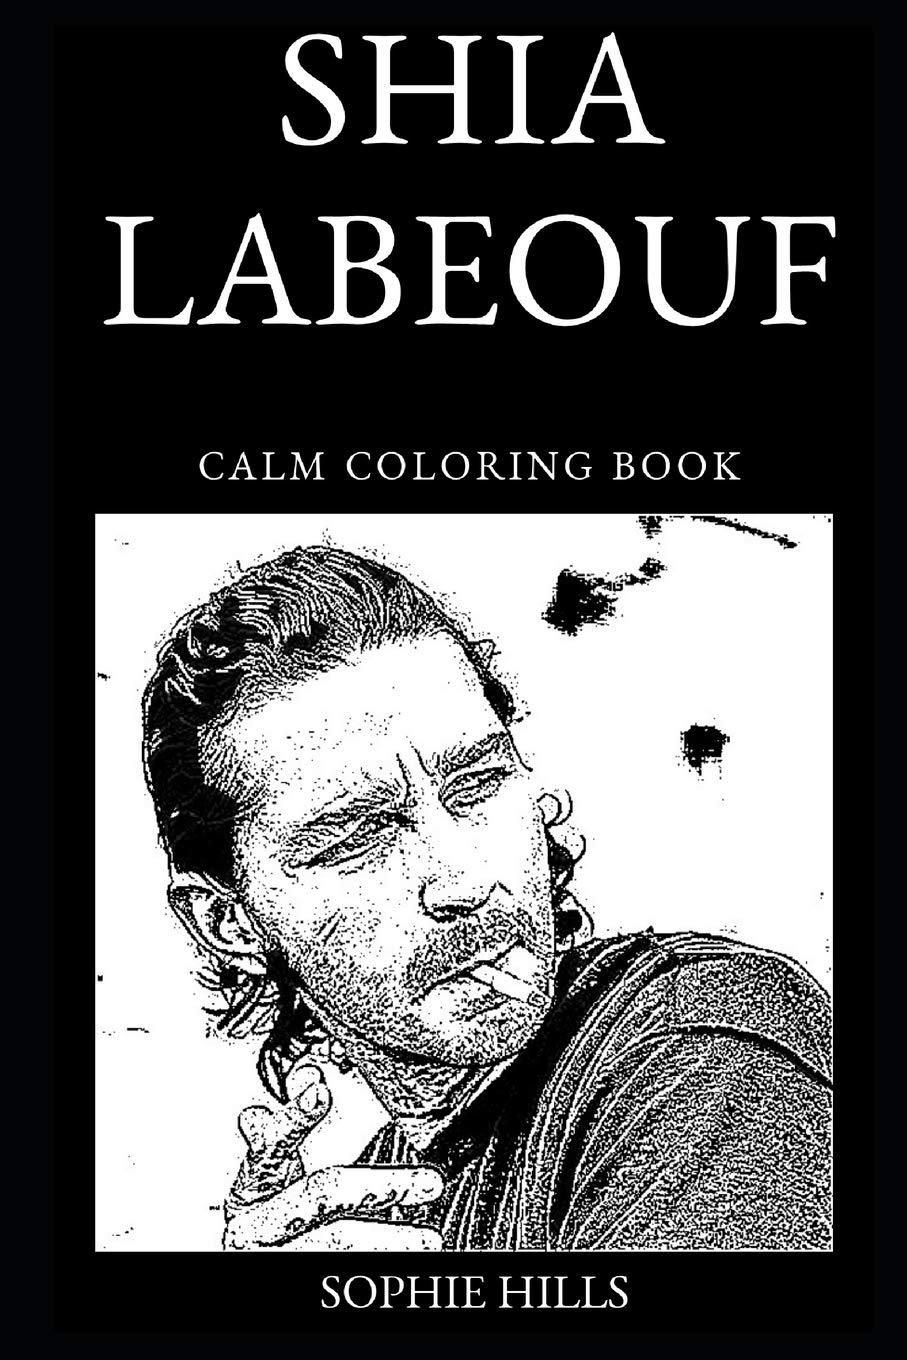 Shia LaBeouf Calm Coloring Book  Shia LaBeouf Calm Coloring Books Band 0